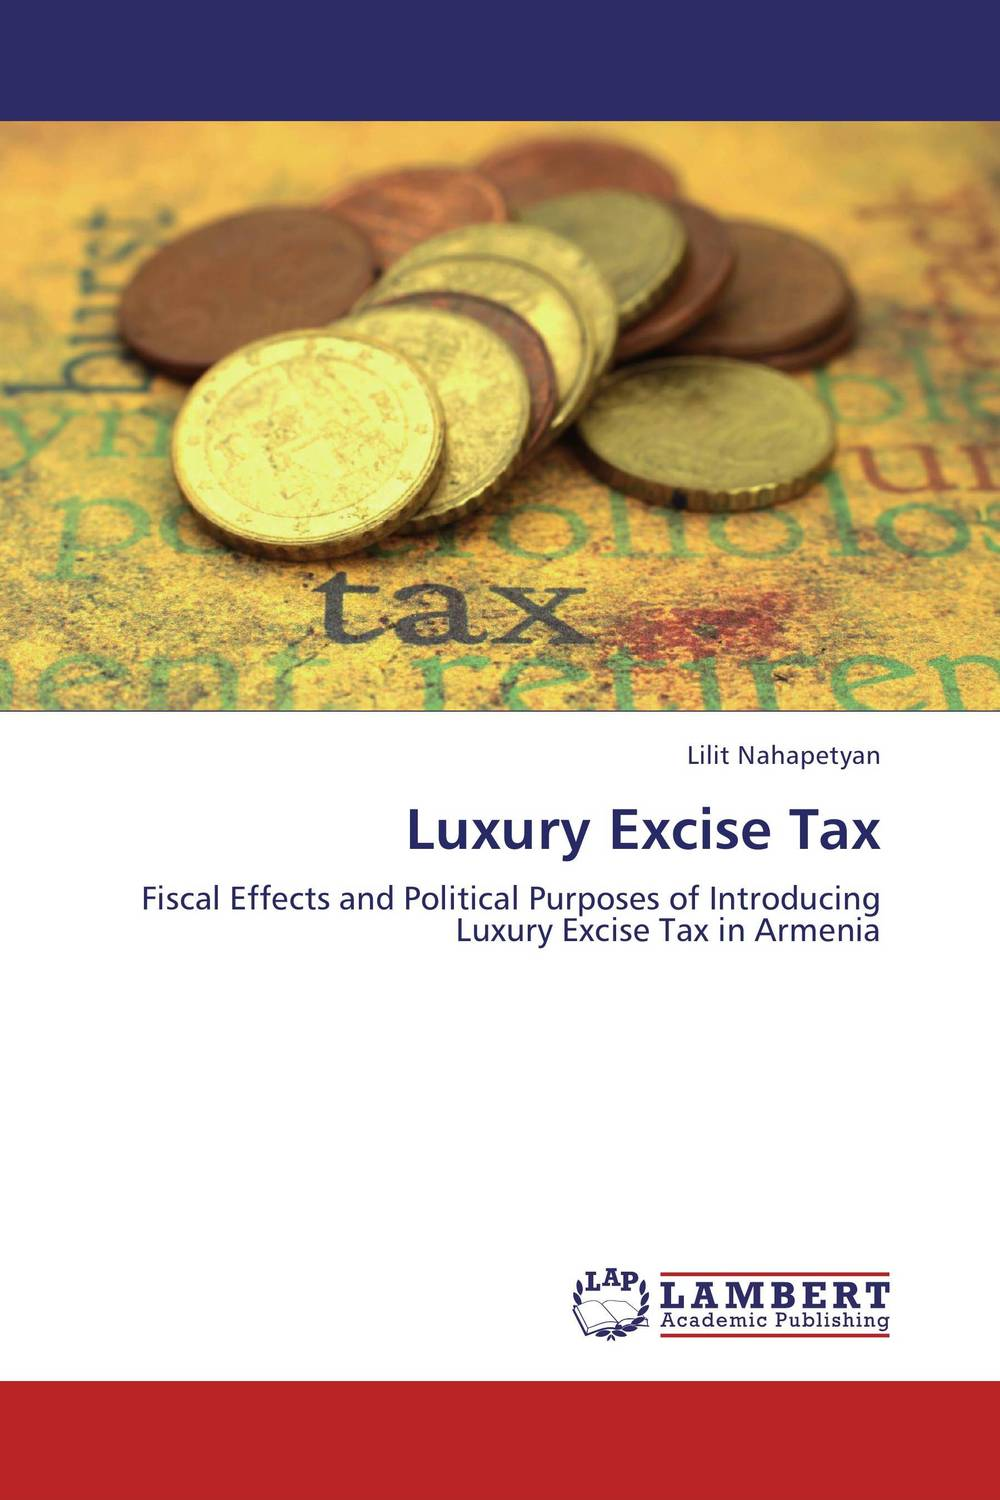 Luxury Excise Tax